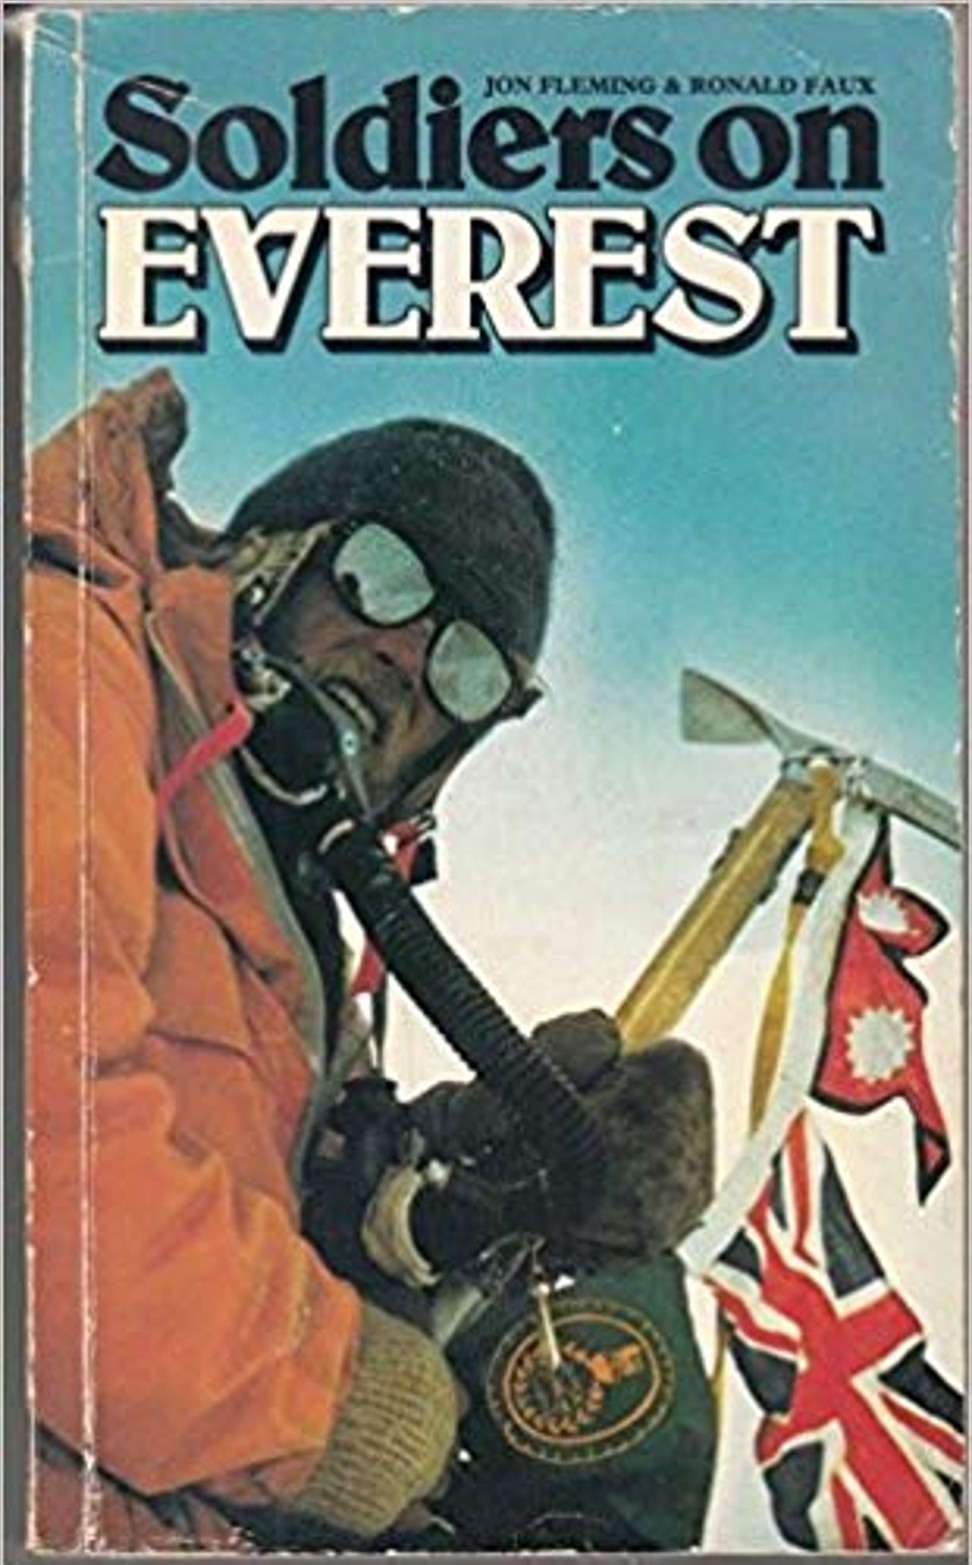 Soldiers on Everest, a book about the 1976 Army expedition by Ronnie Faux and John Flemming. Photo: Handout